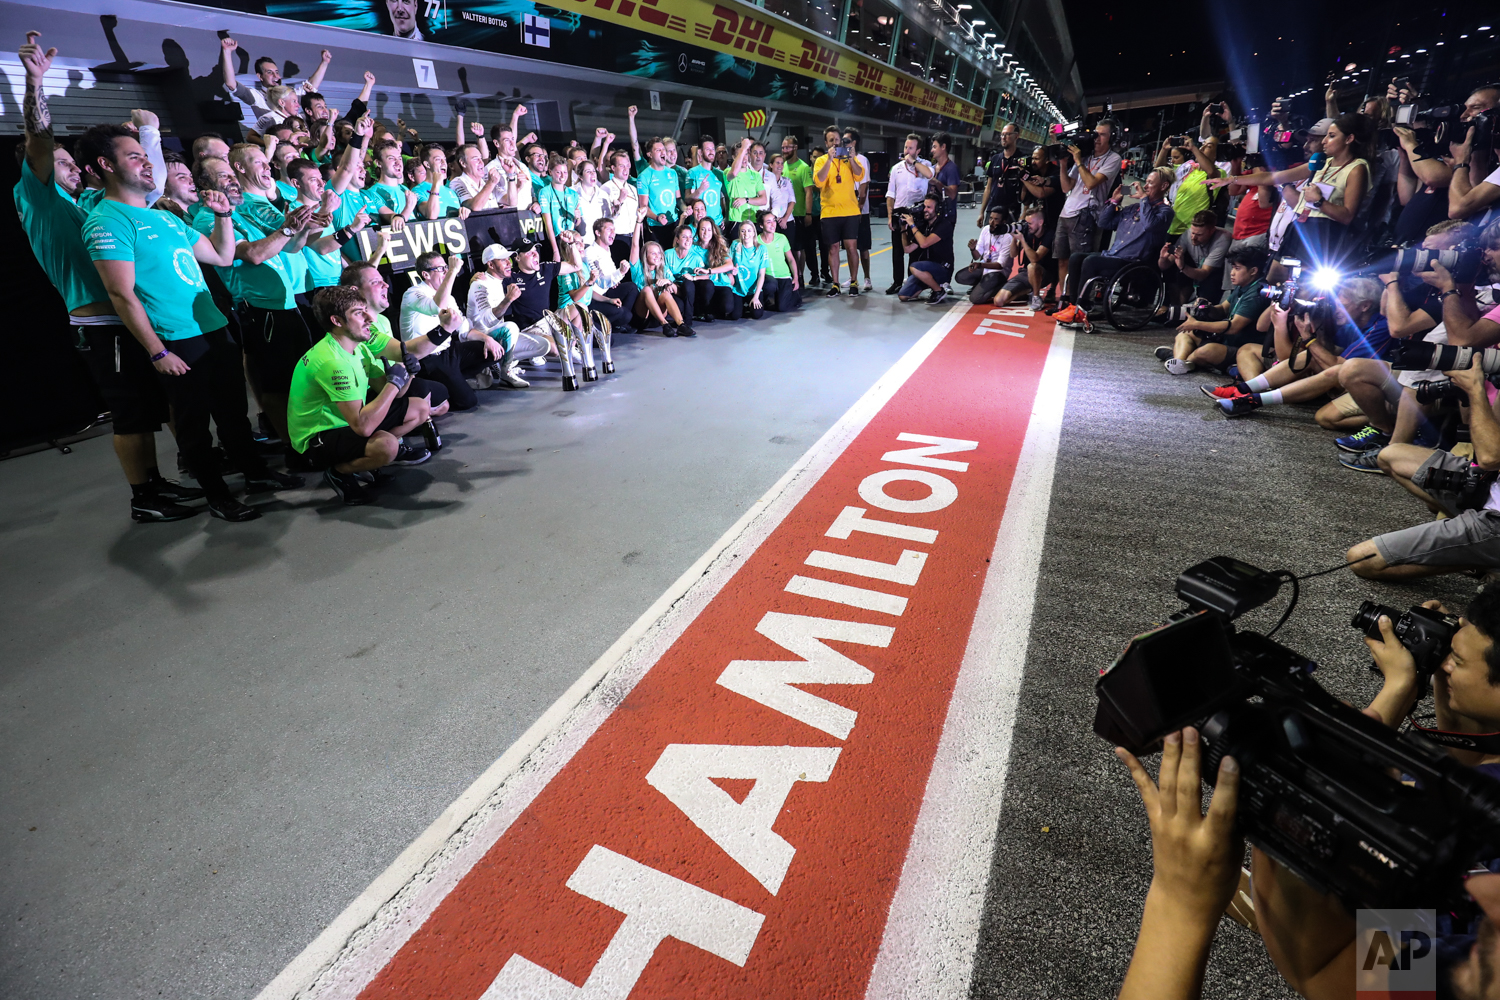 Mercedes driver Lewis Hamilton of Britain and Mercedes driver Valtteri Bottas of Finland celebrate with their team after the Singapore Formula One Grand Prix on the Marina Bay City Circuit Singapore, Sunday, Sept. 17, 2017. Hamilton won the race while Bottas finished third. (AP Photo/Yong Teck Lim)